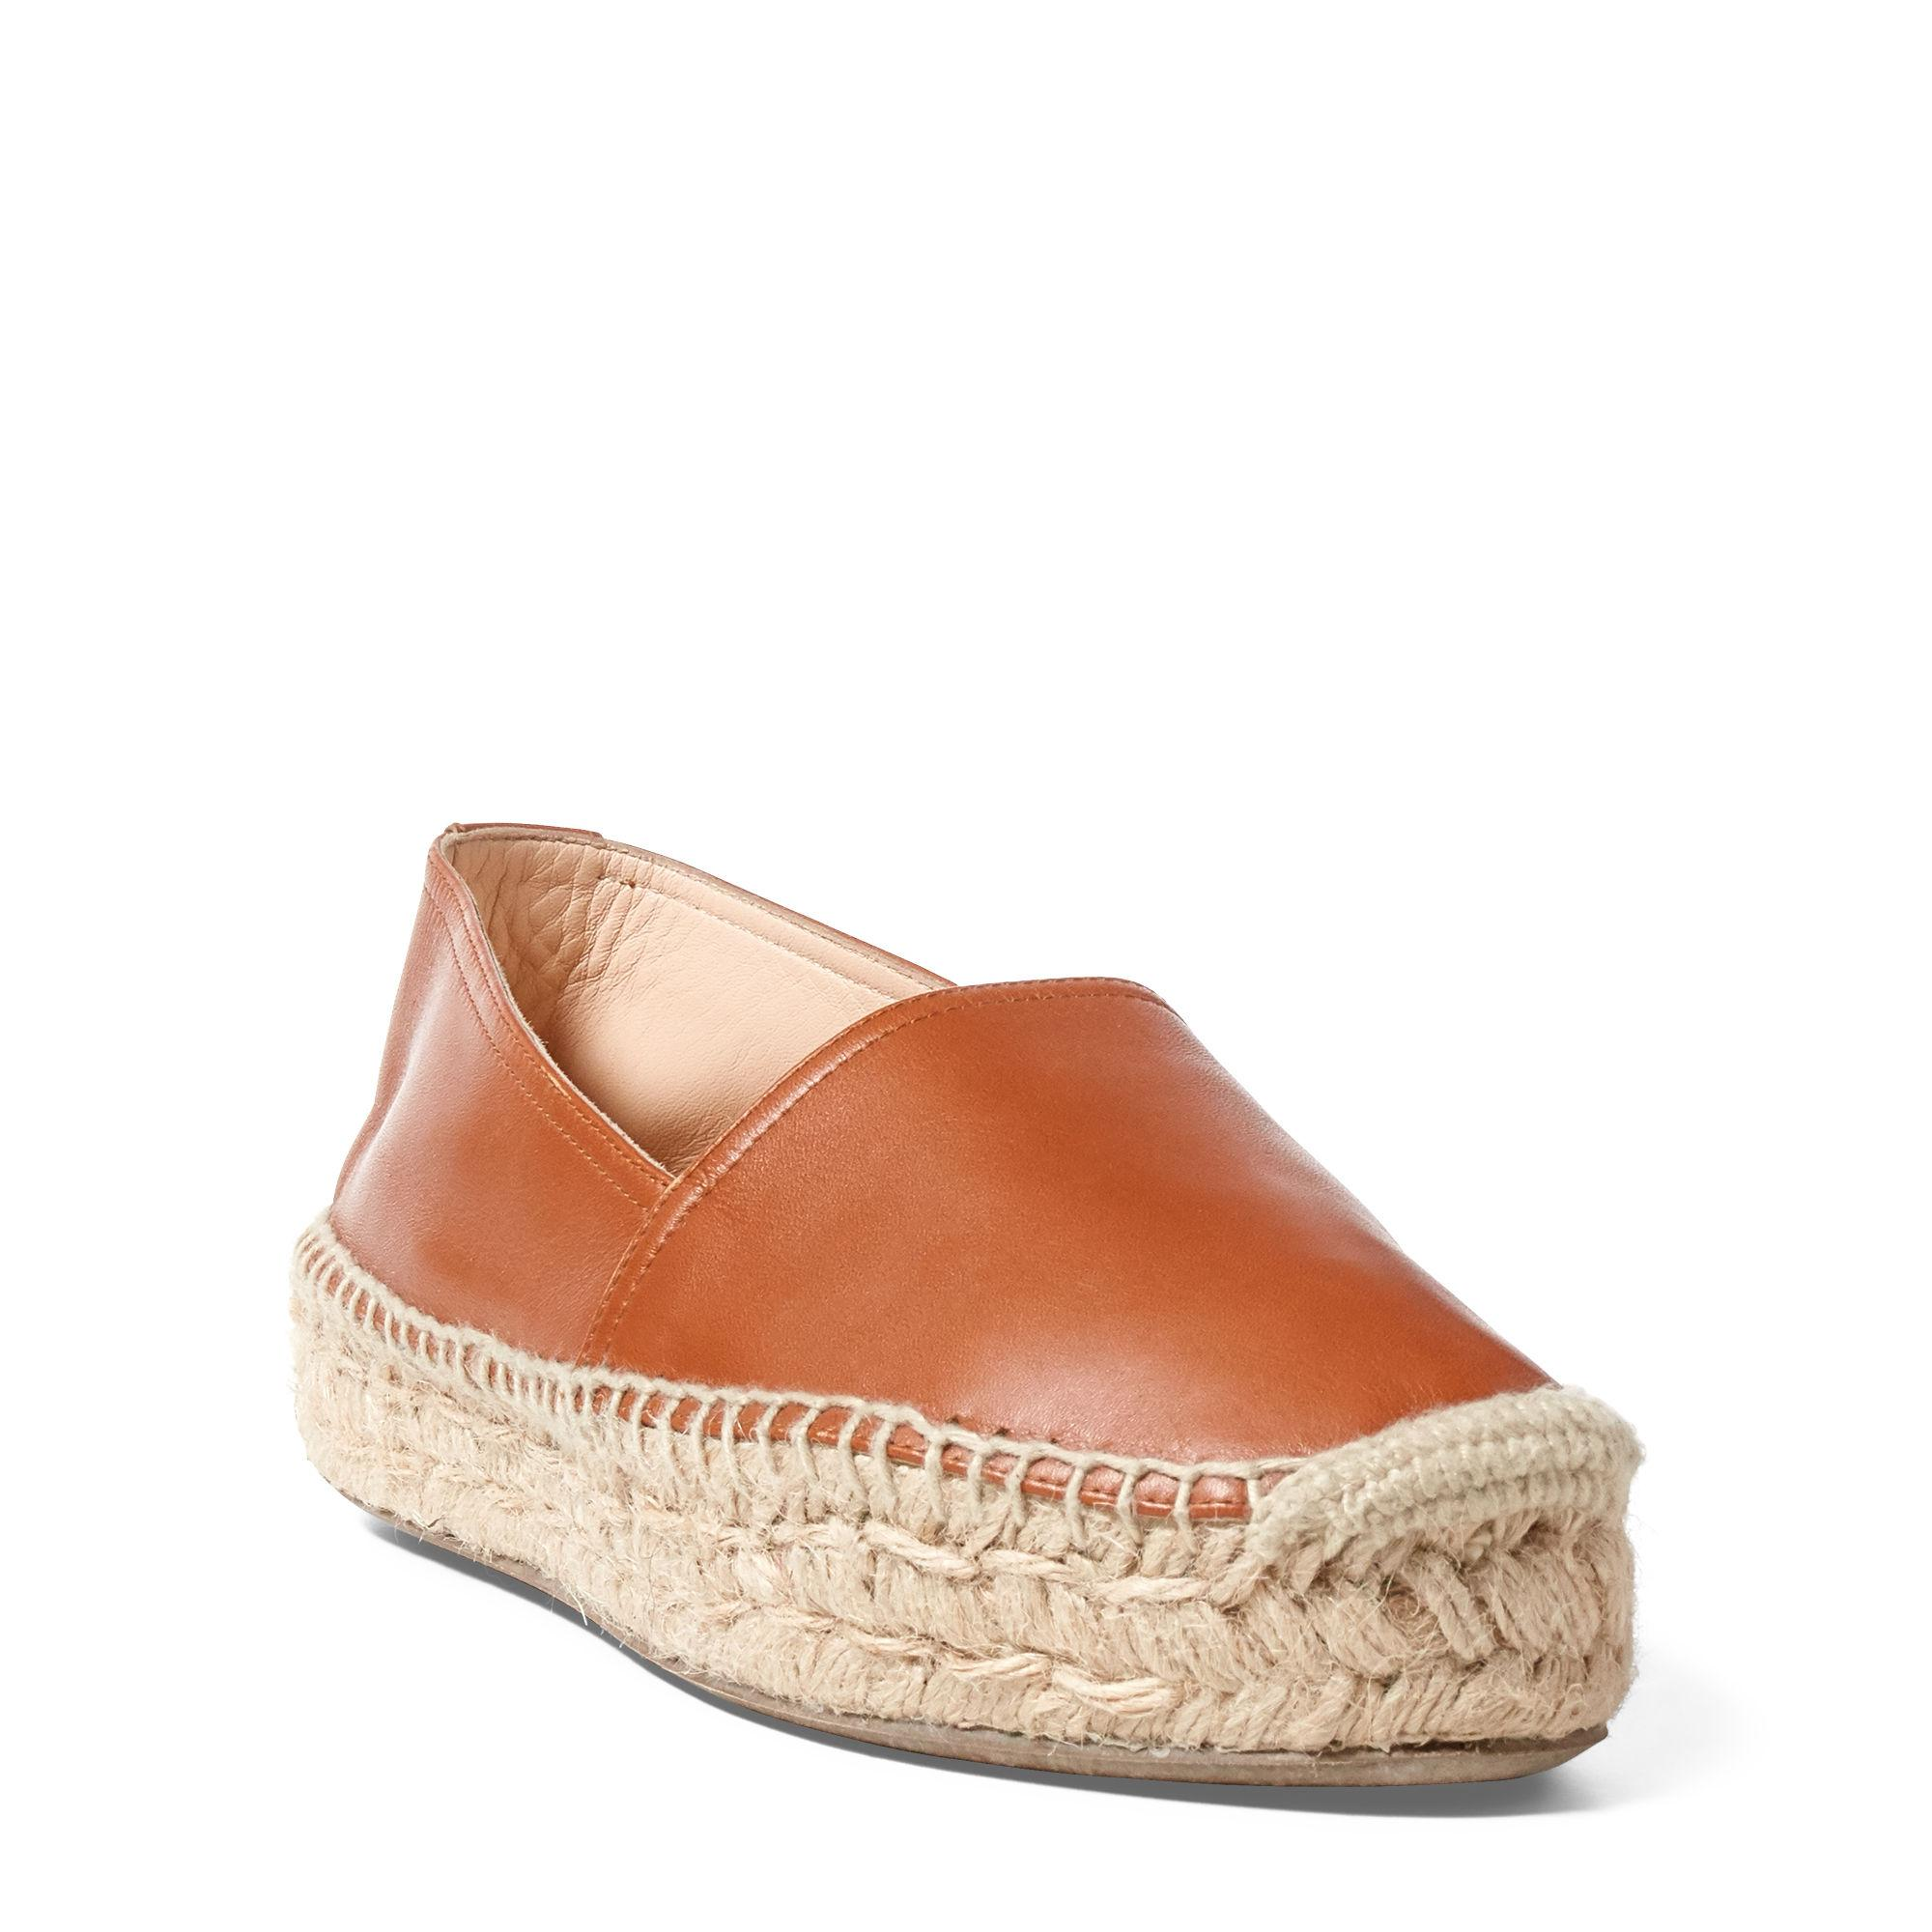 lyst polo ralph lauren joanne calfskin espadrille in brown. Black Bedroom Furniture Sets. Home Design Ideas